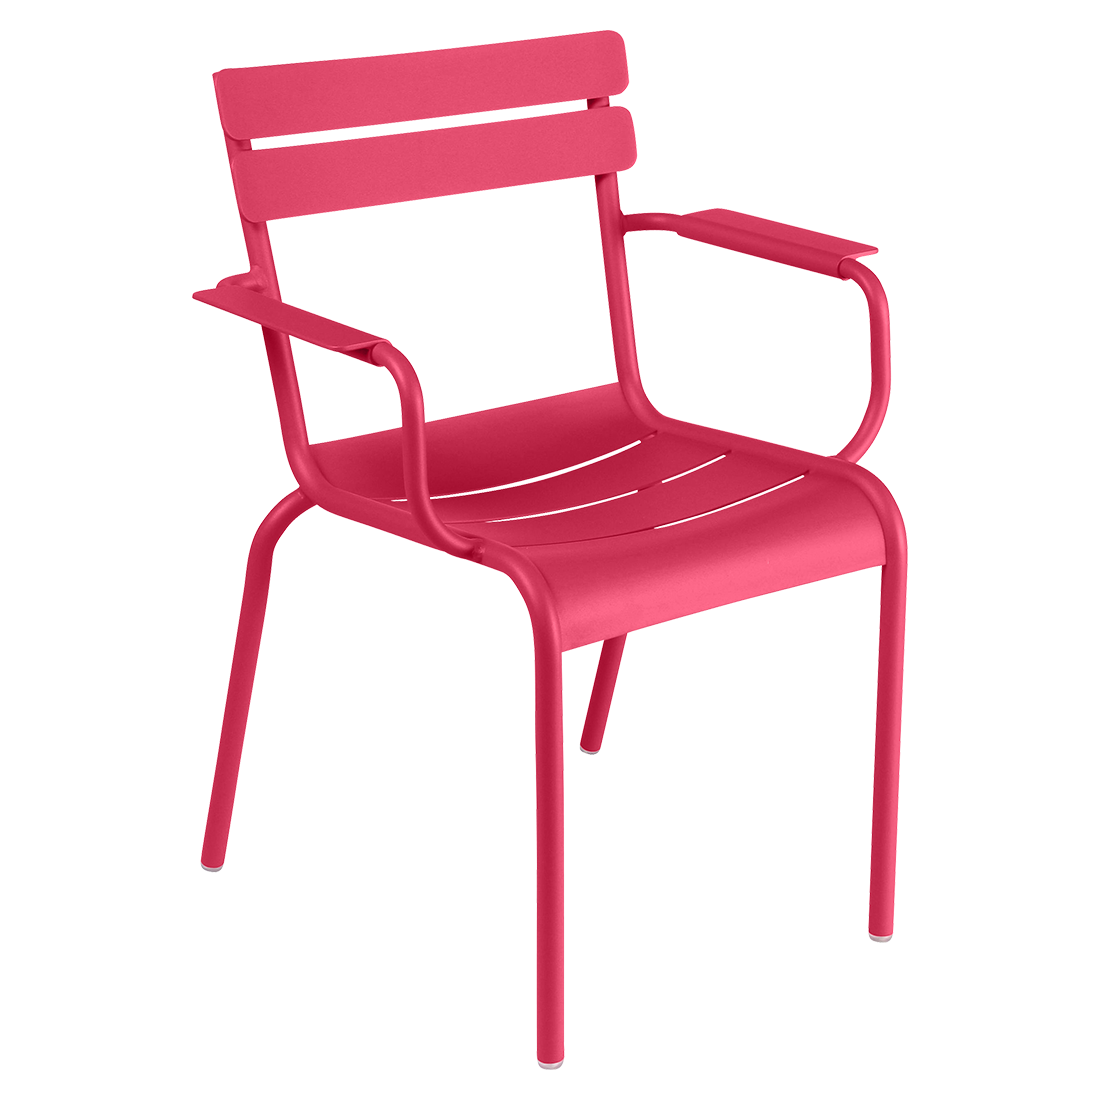 chaise metal, chaise fermob, mobilier terrasse, mobilier restaurant, chaise restaurant, chaise rose, chaise restaurant